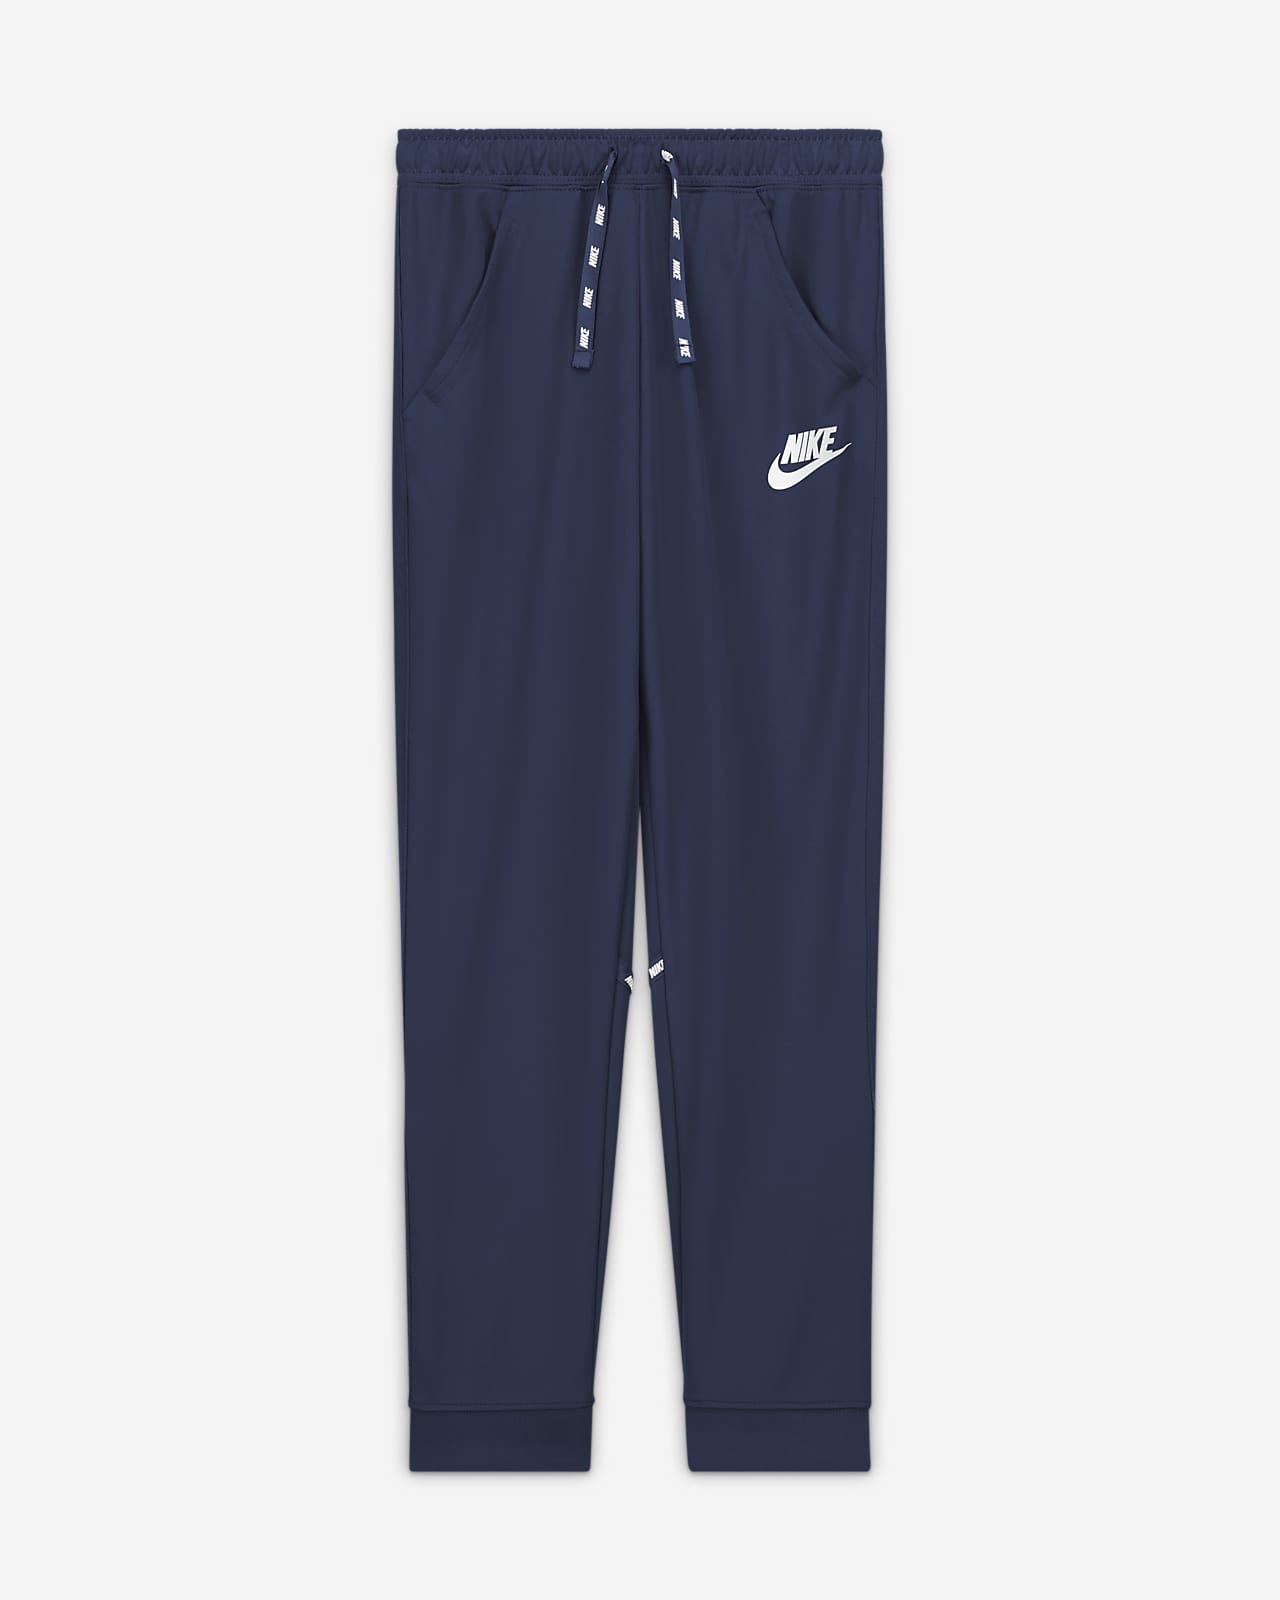 Nike Sportswear Older Kids' (Boys') Tapered Trousers